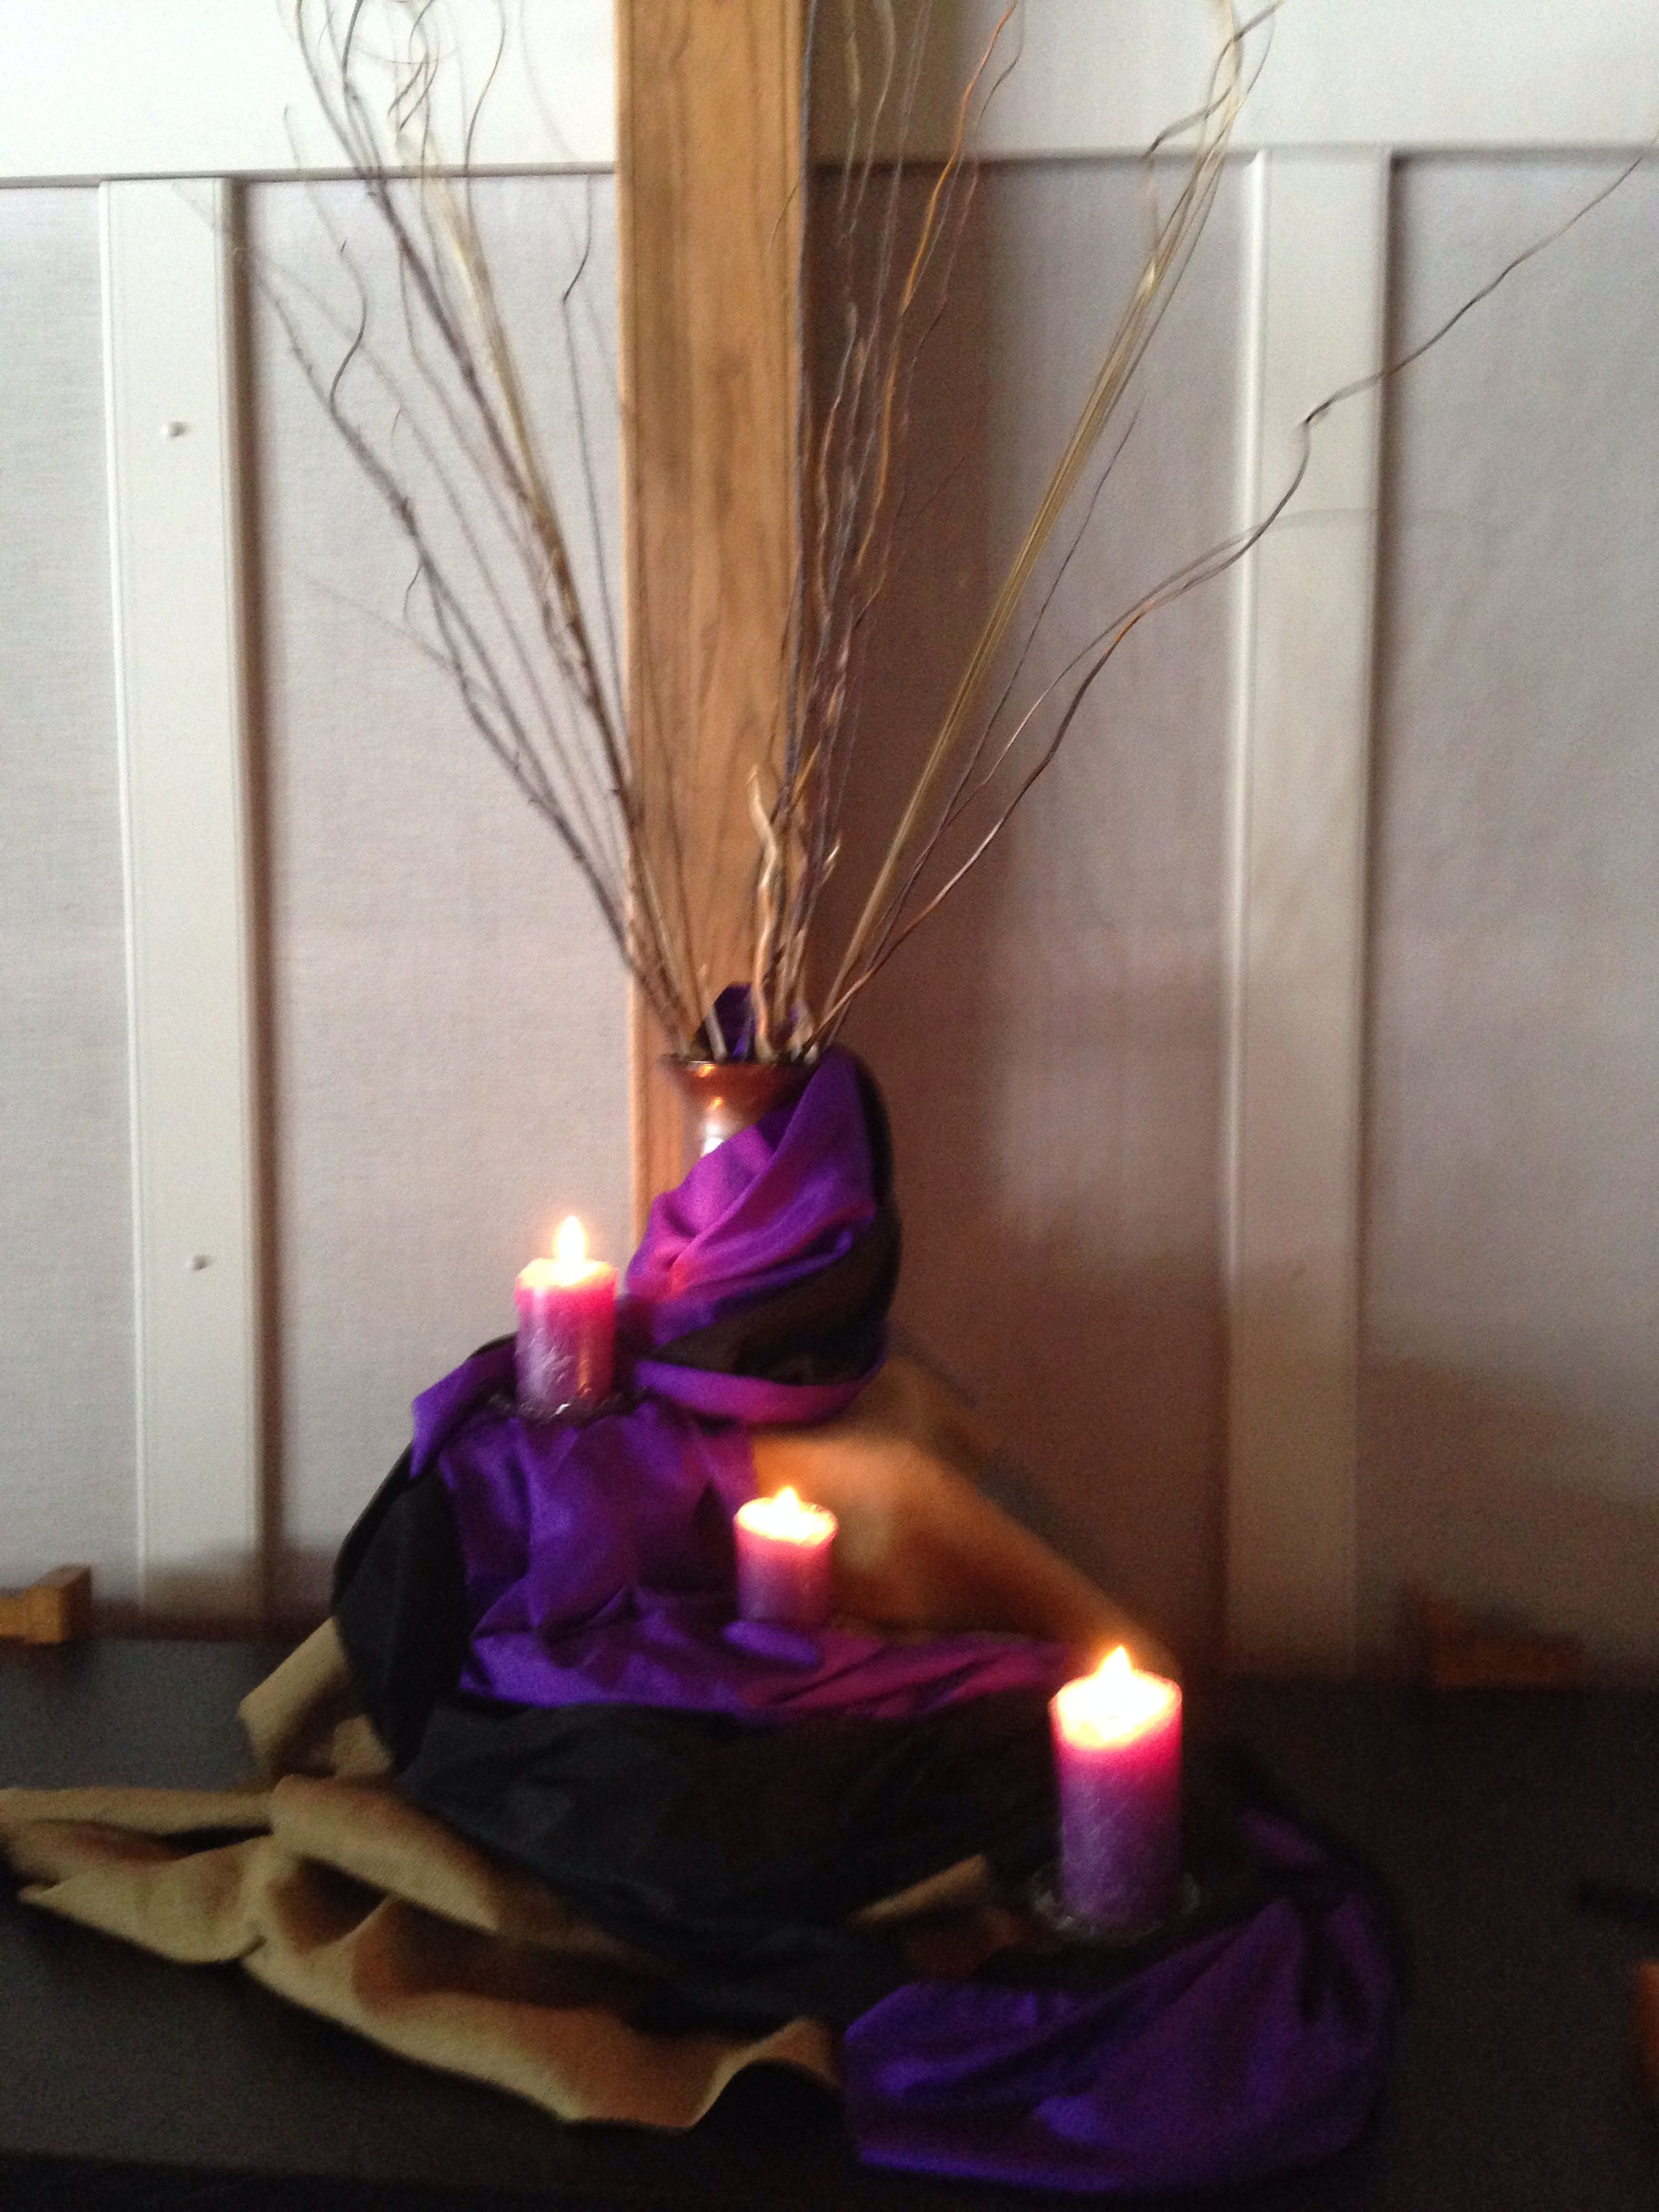 Lent Decor Idea I Love The Use Of The Purple And The Candles And